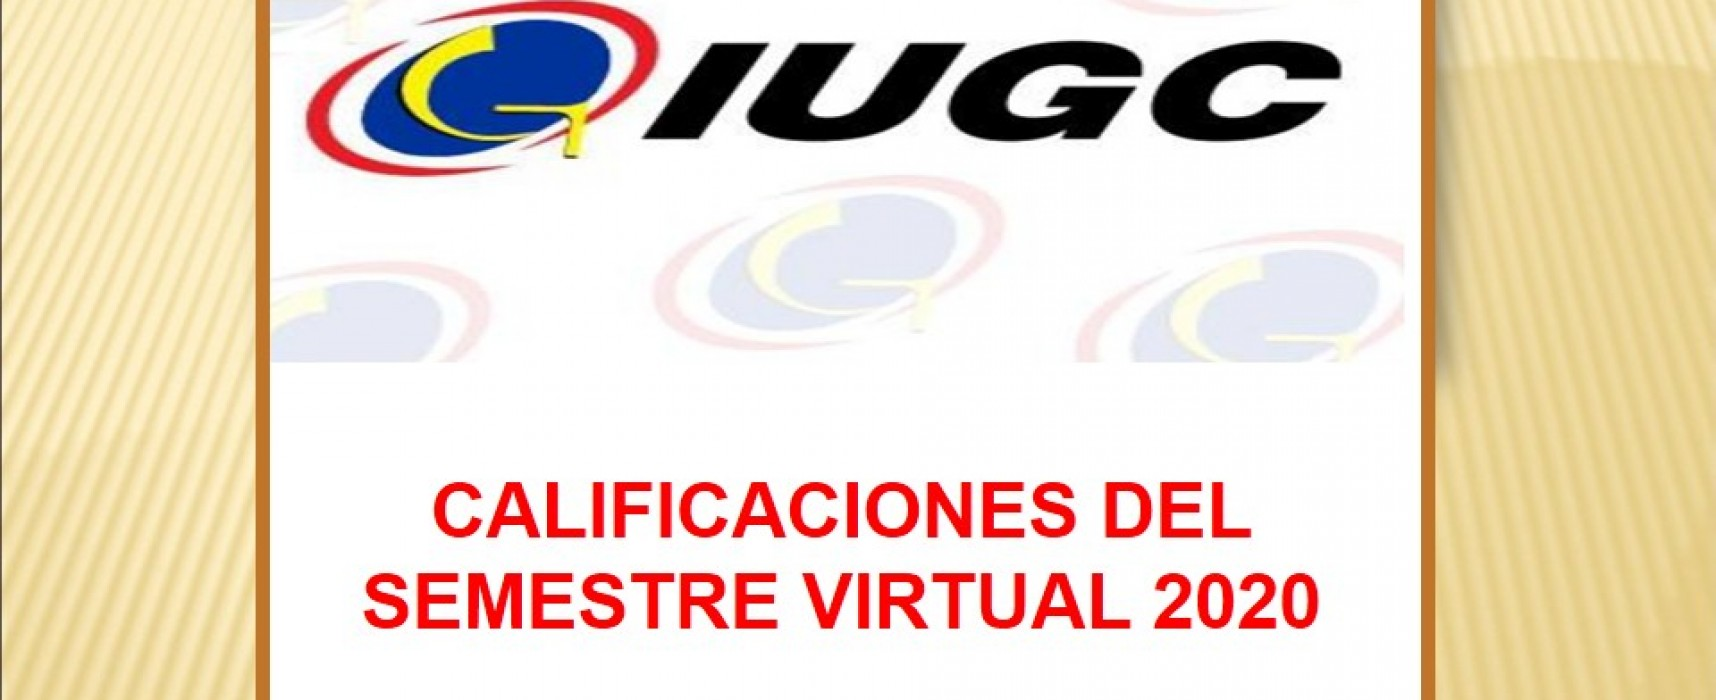 CALIFICACIONES DEL SEMESTRE VIRTUAL 2020.